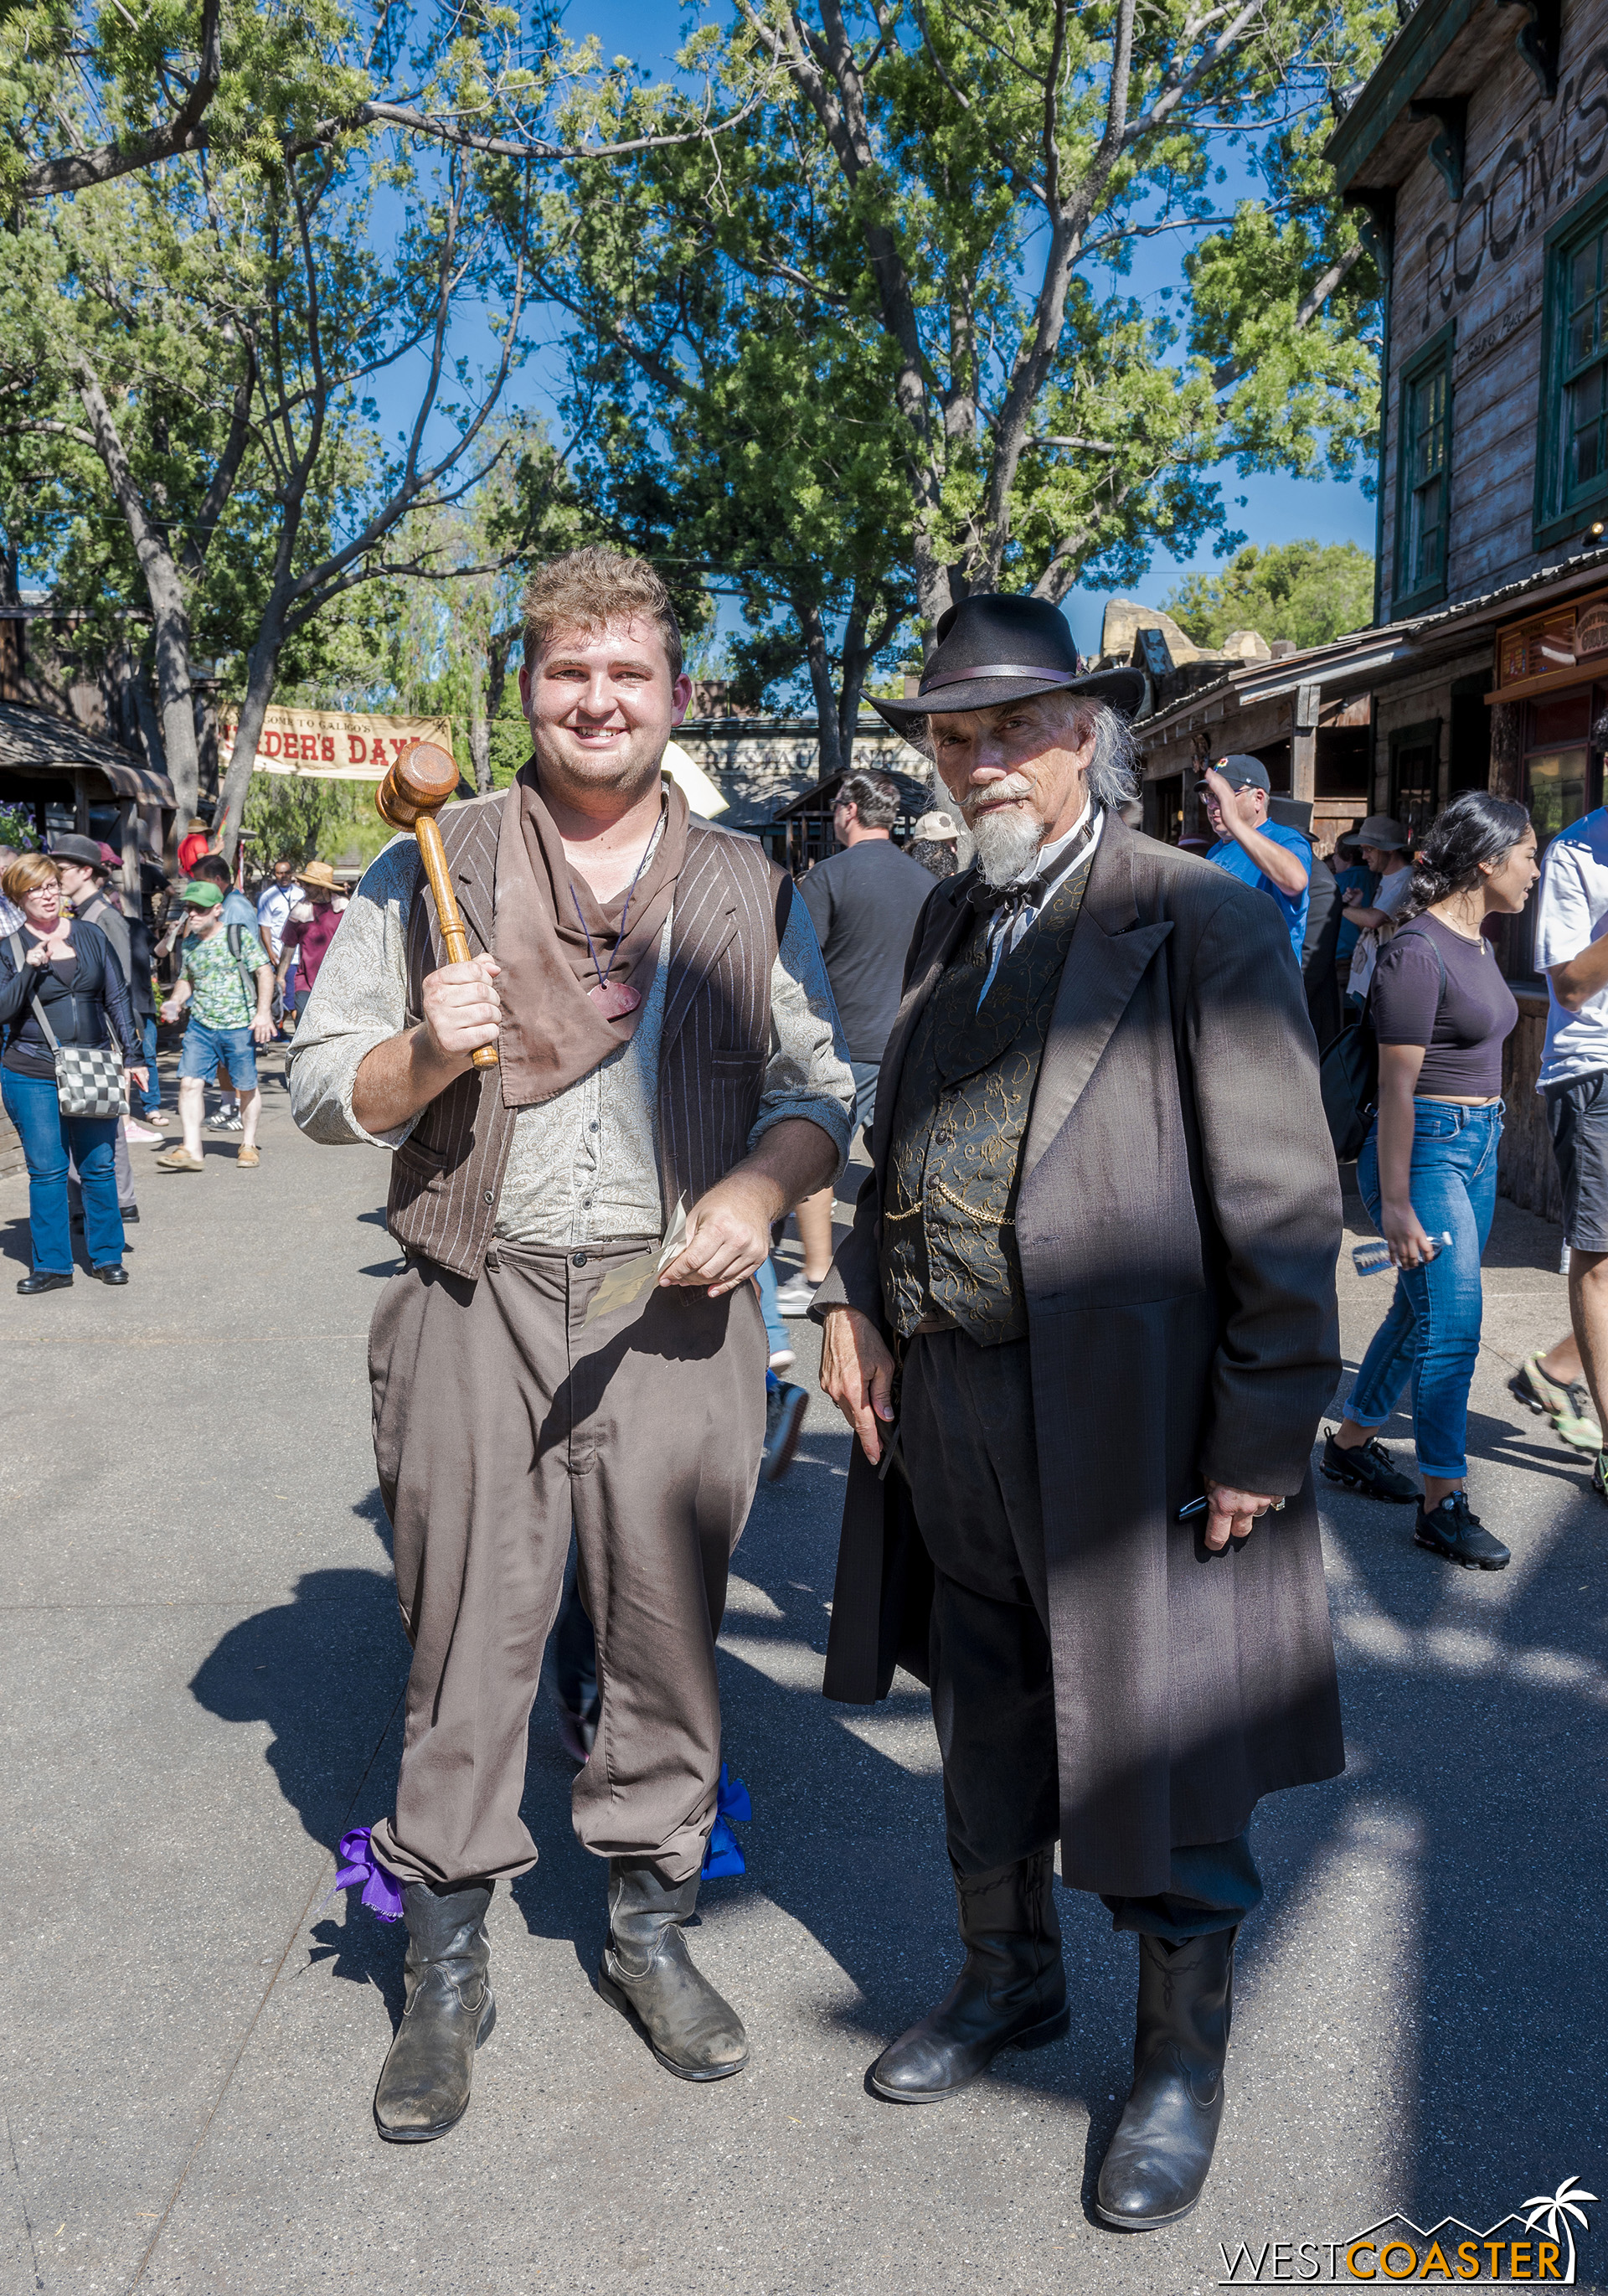 Emery Mund (left) still causes unintentional trouble and confusion.  He's quite a contrast to the gruff, serious, but internally caring Judge Roy Bean.